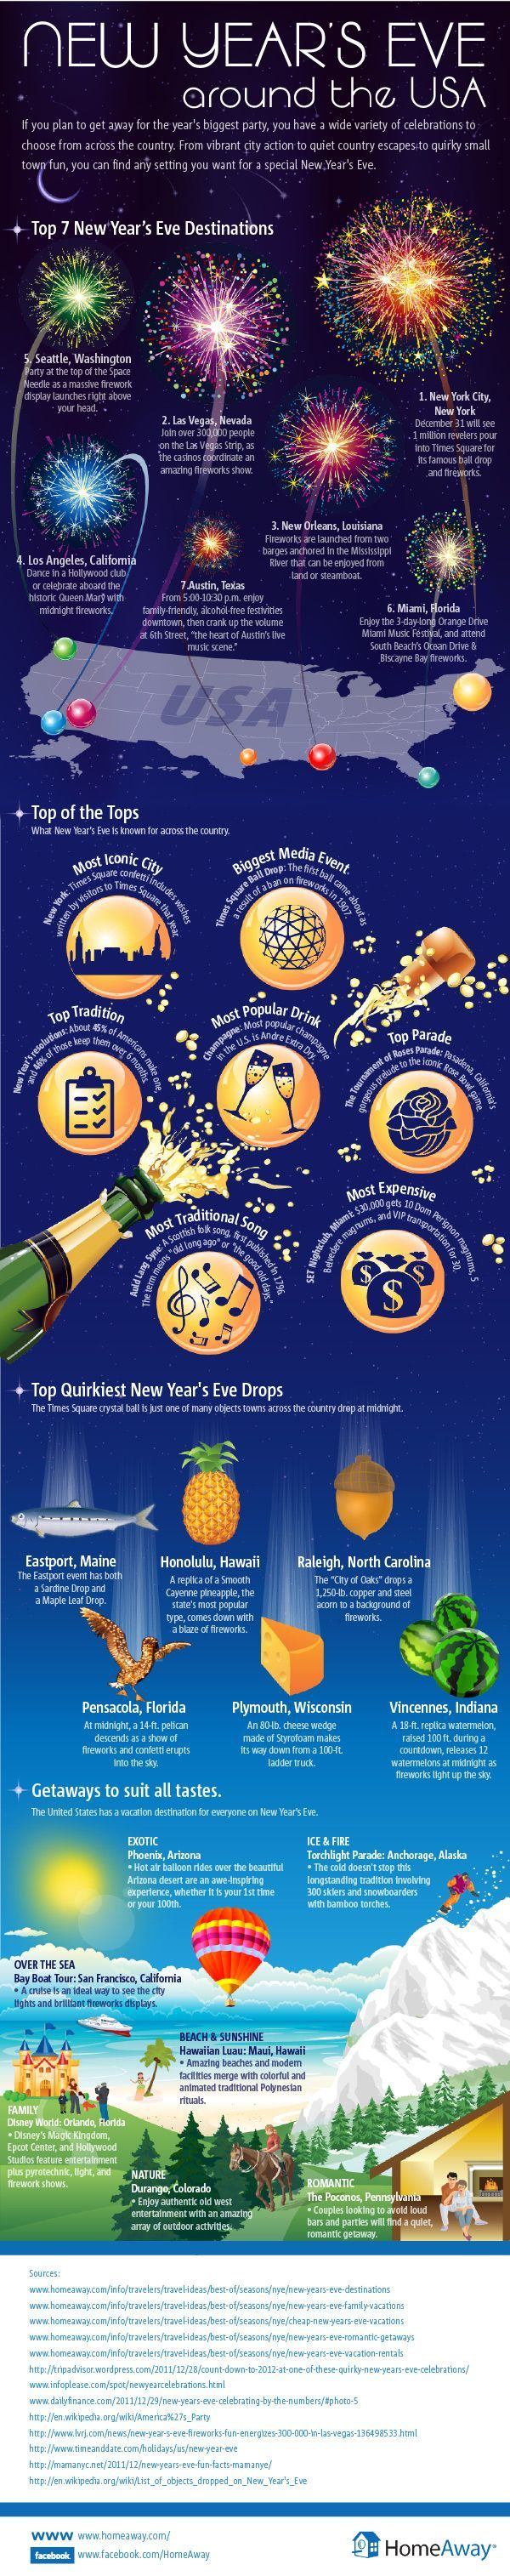 New Year S Eve Around The Usa New Year S Eve Around The World New Years Eve Happy New Year 2015